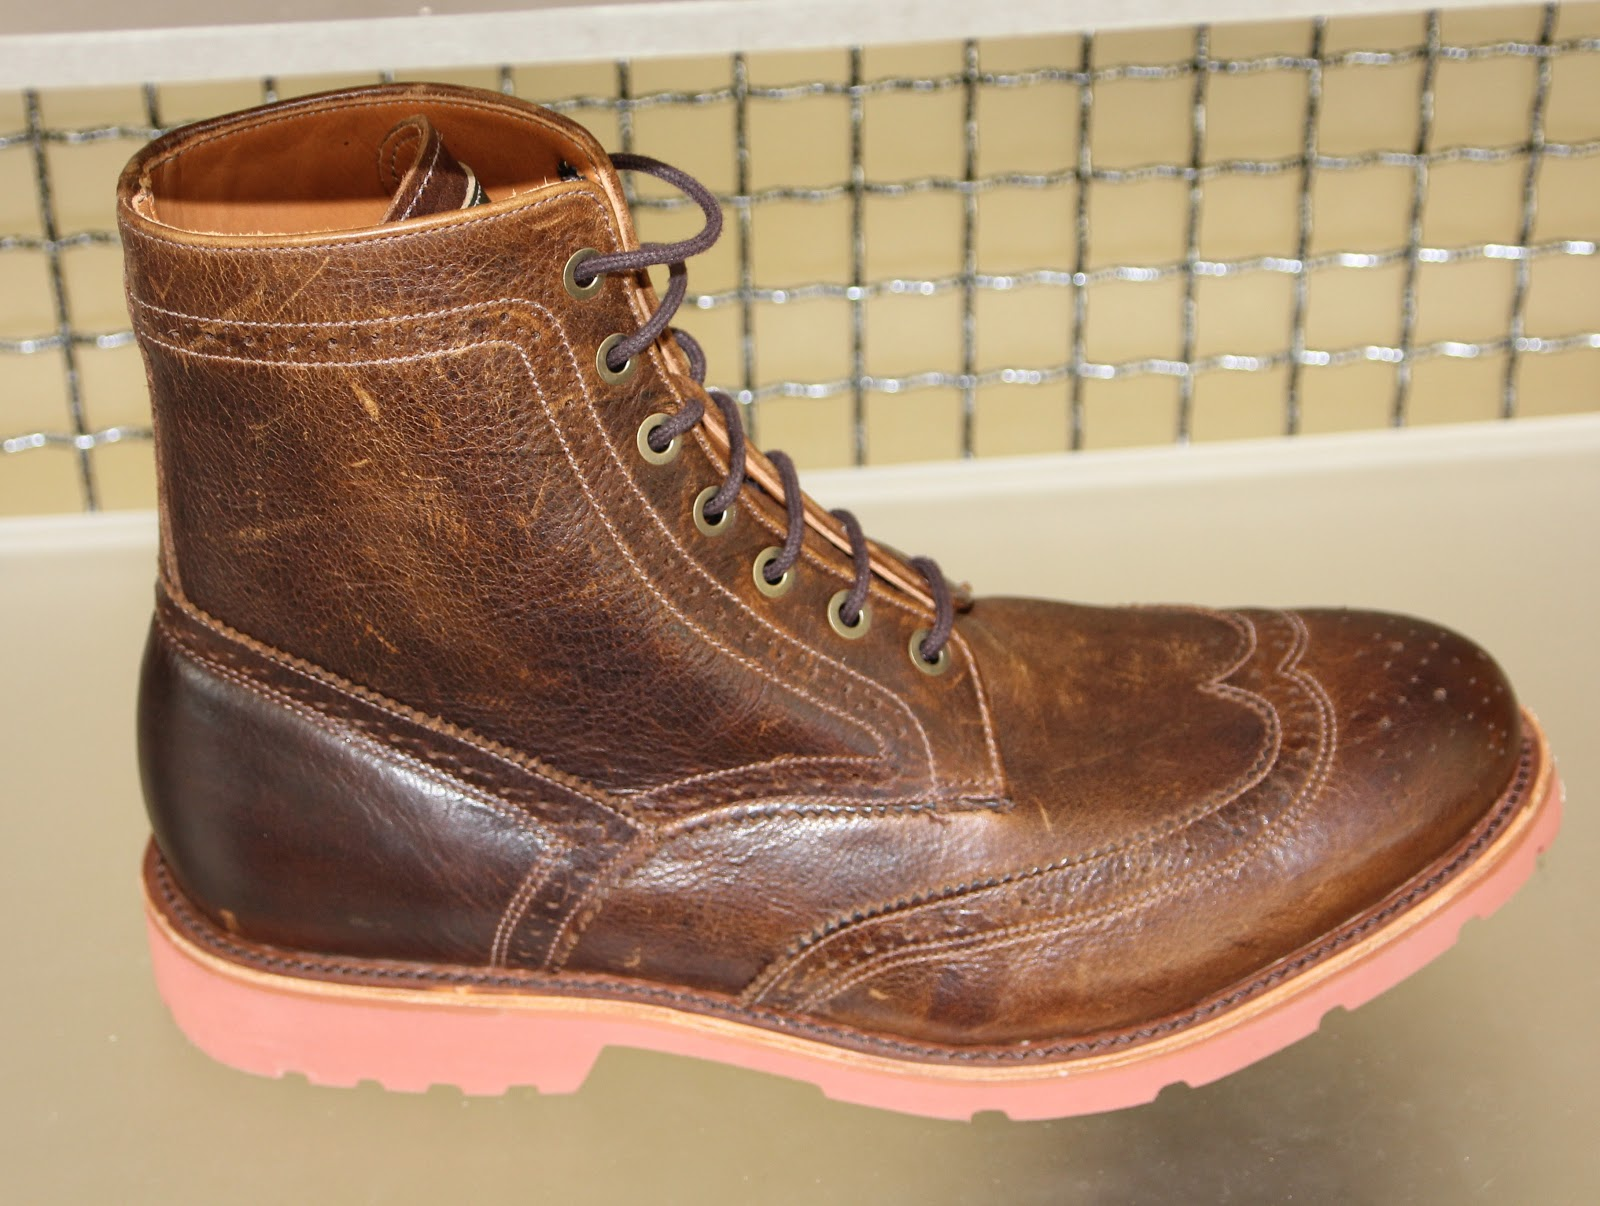 f3bb9c47773f KELSO-$379 Leather upper and lining, Goodyear Welt construction, Vibram  non-slip outsole